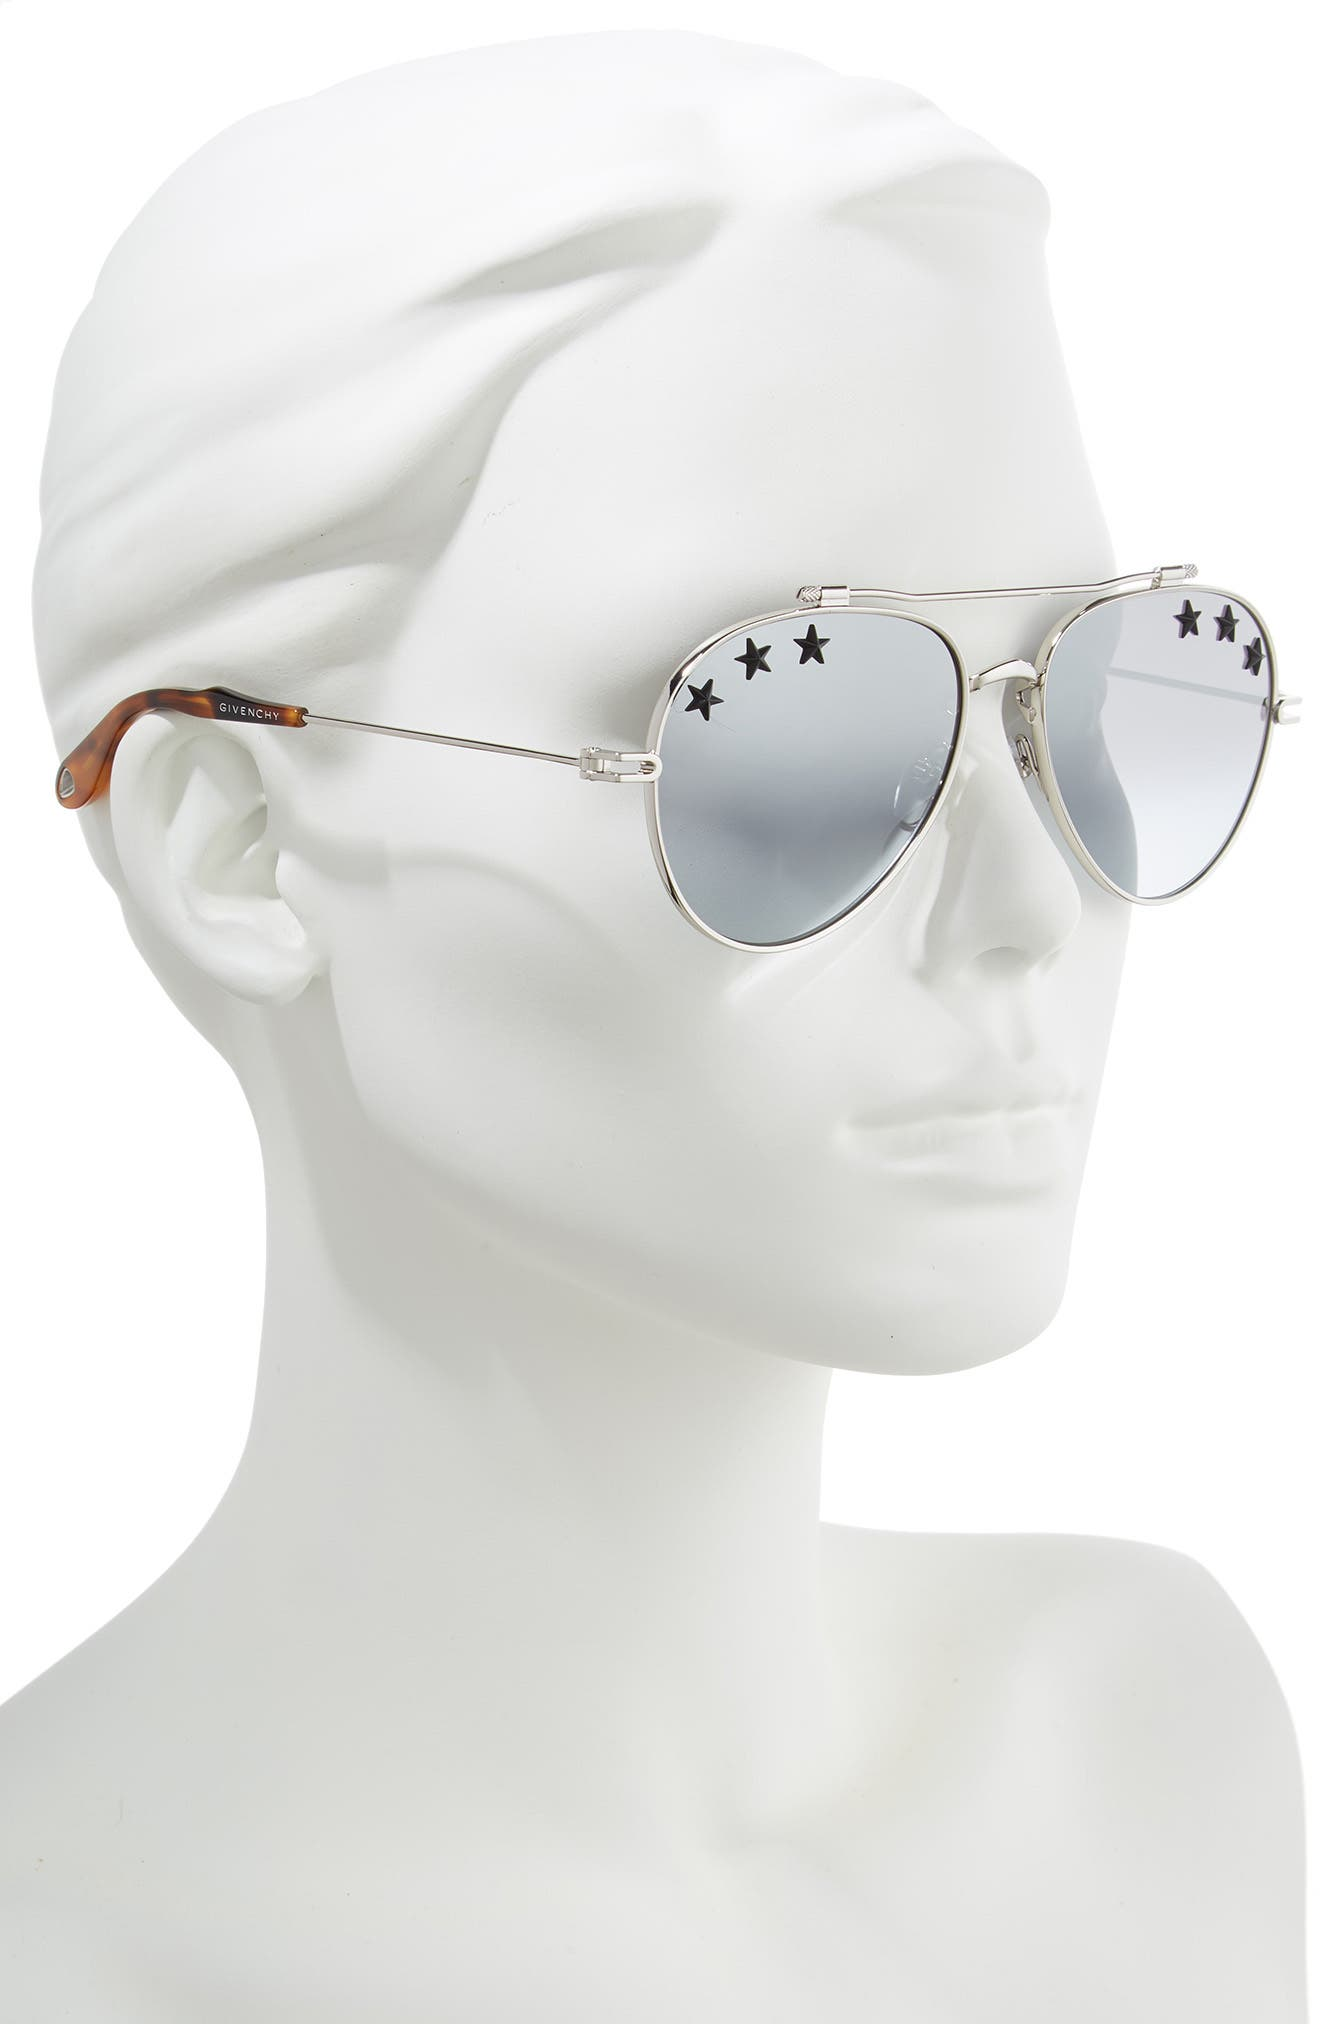 3a1b431509 Givenchy Women s Sunglasses and Accessories